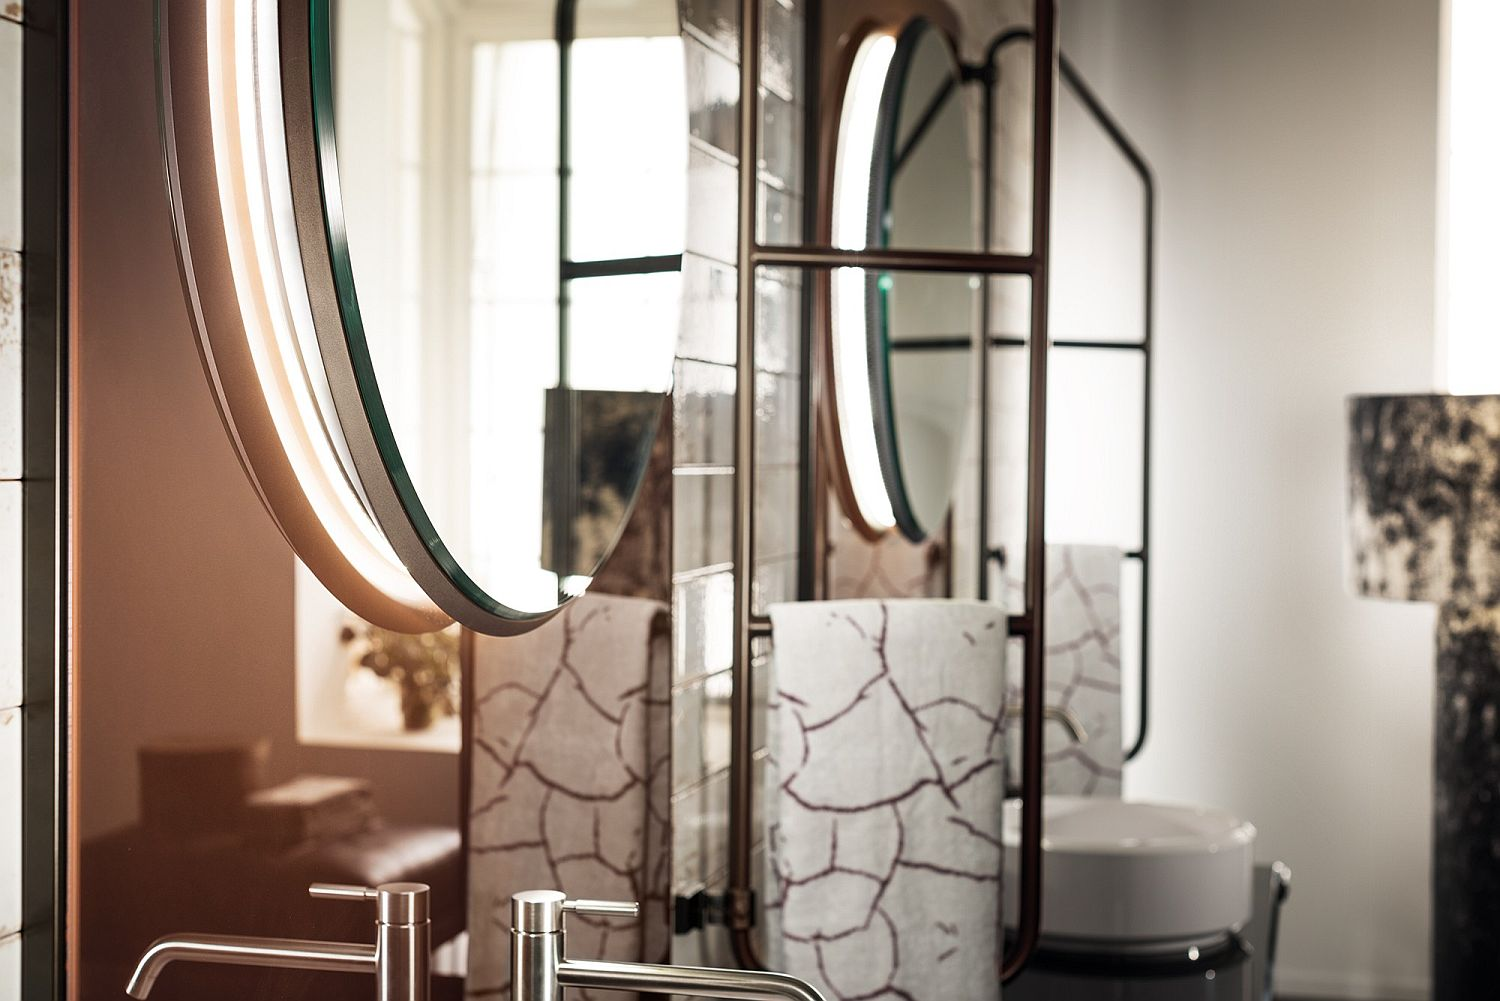 Closer look at the copper patina backsplash and lovely mirrors inside the bathroom